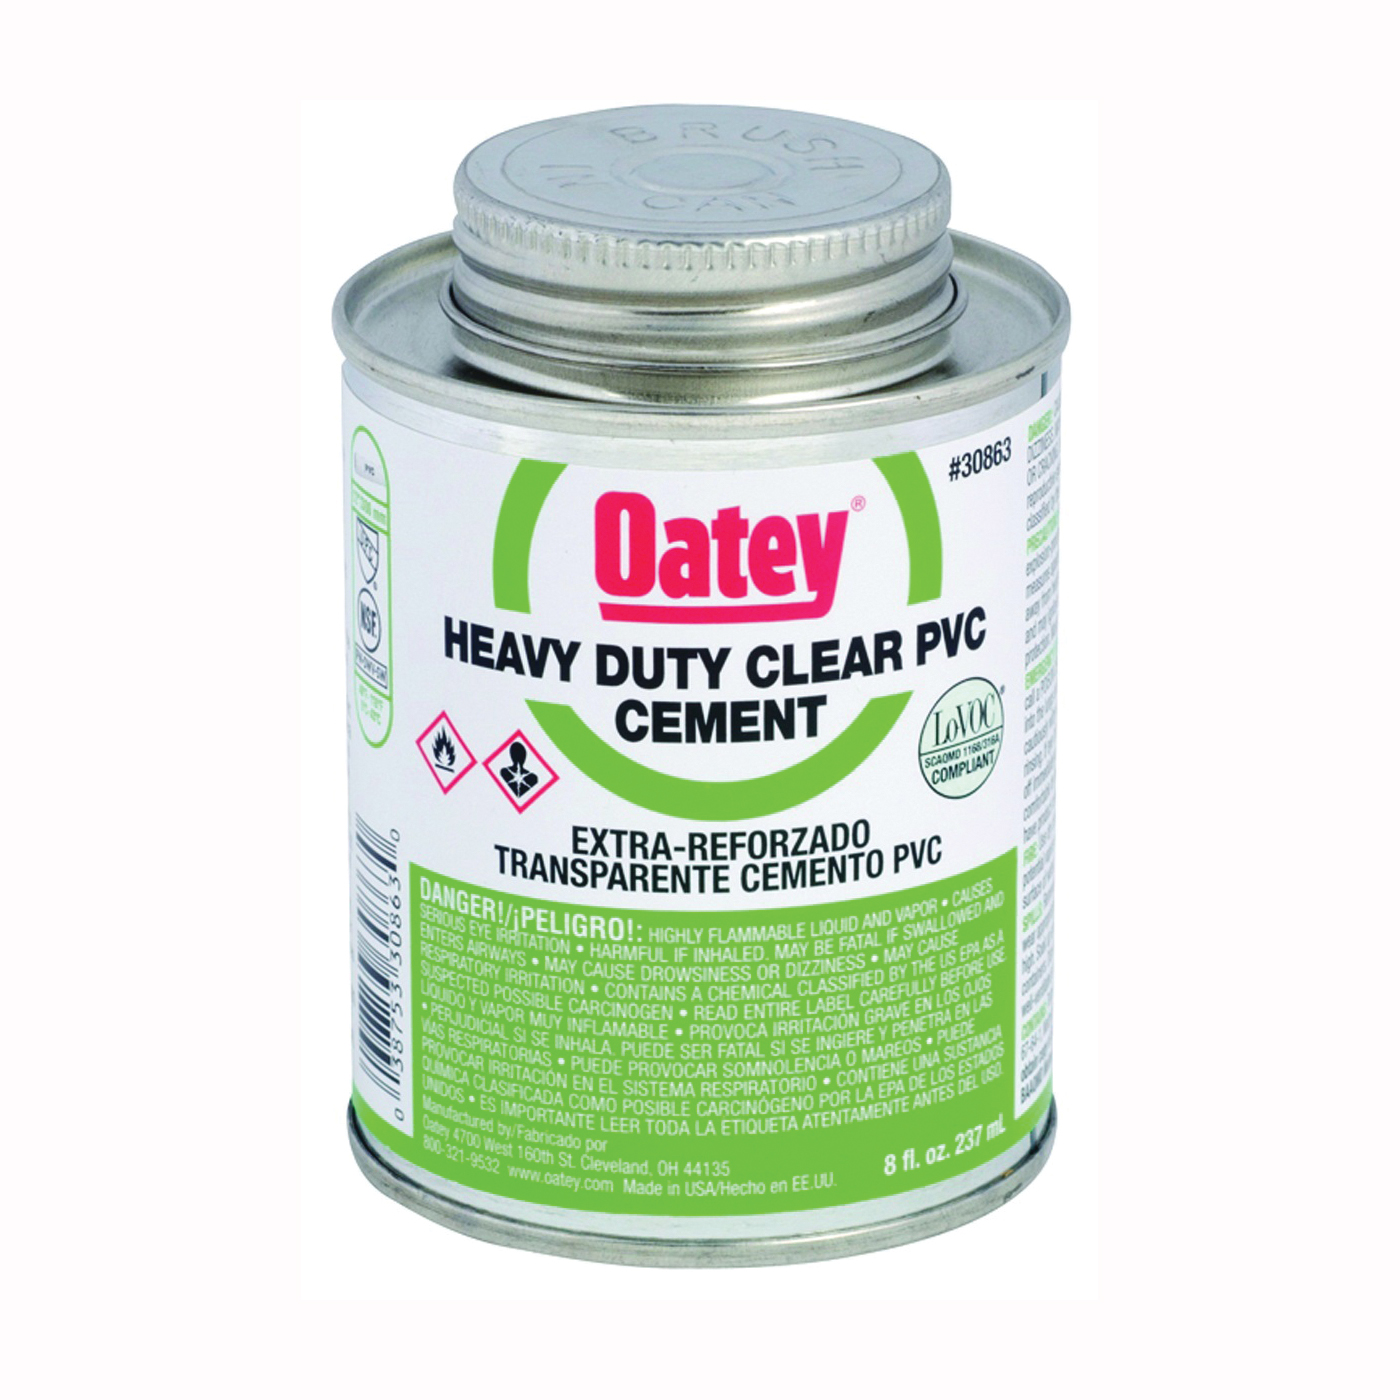 Picture of Oatey 31008 Solvent Cement, 32 oz, Can, Liquid, Clear